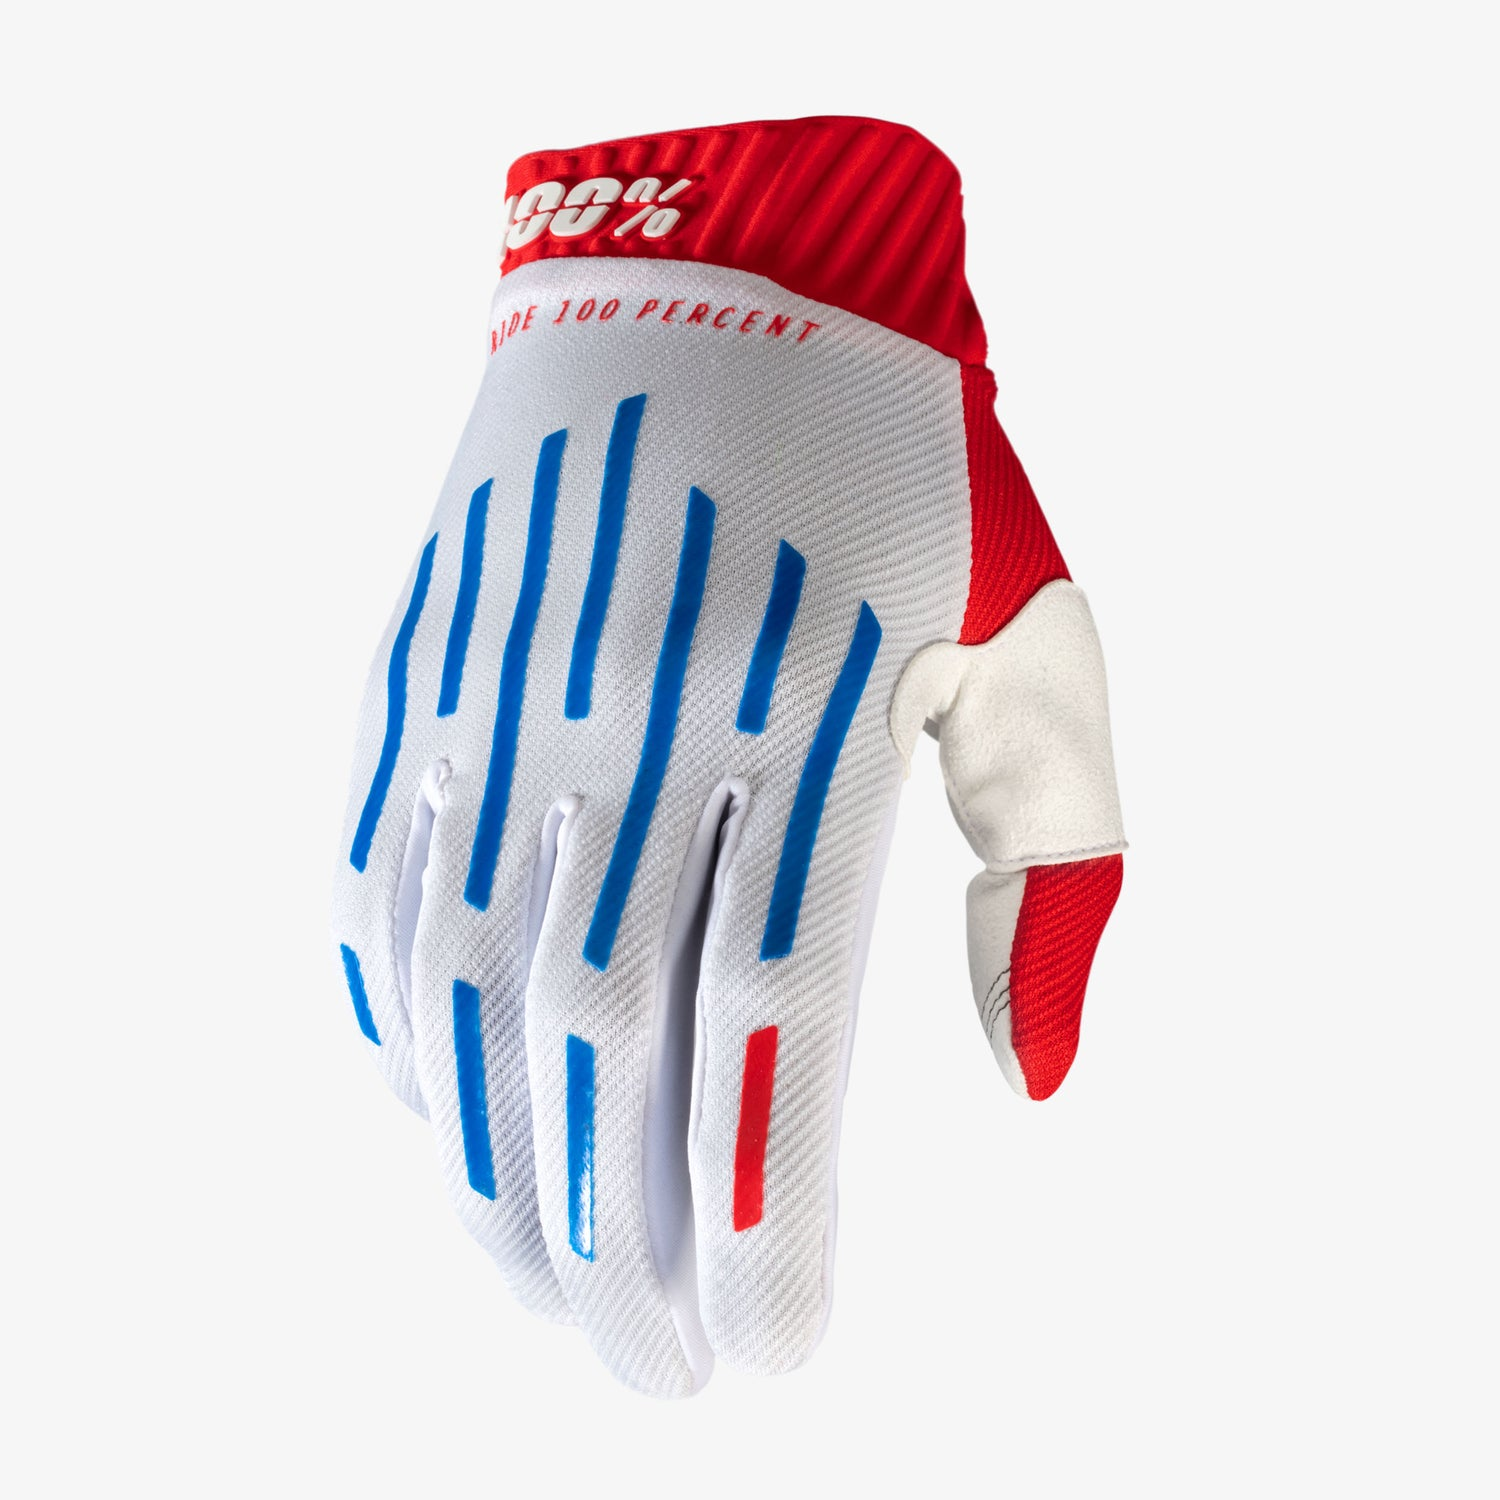 RIDEFIT Gloves Red and White and Blue